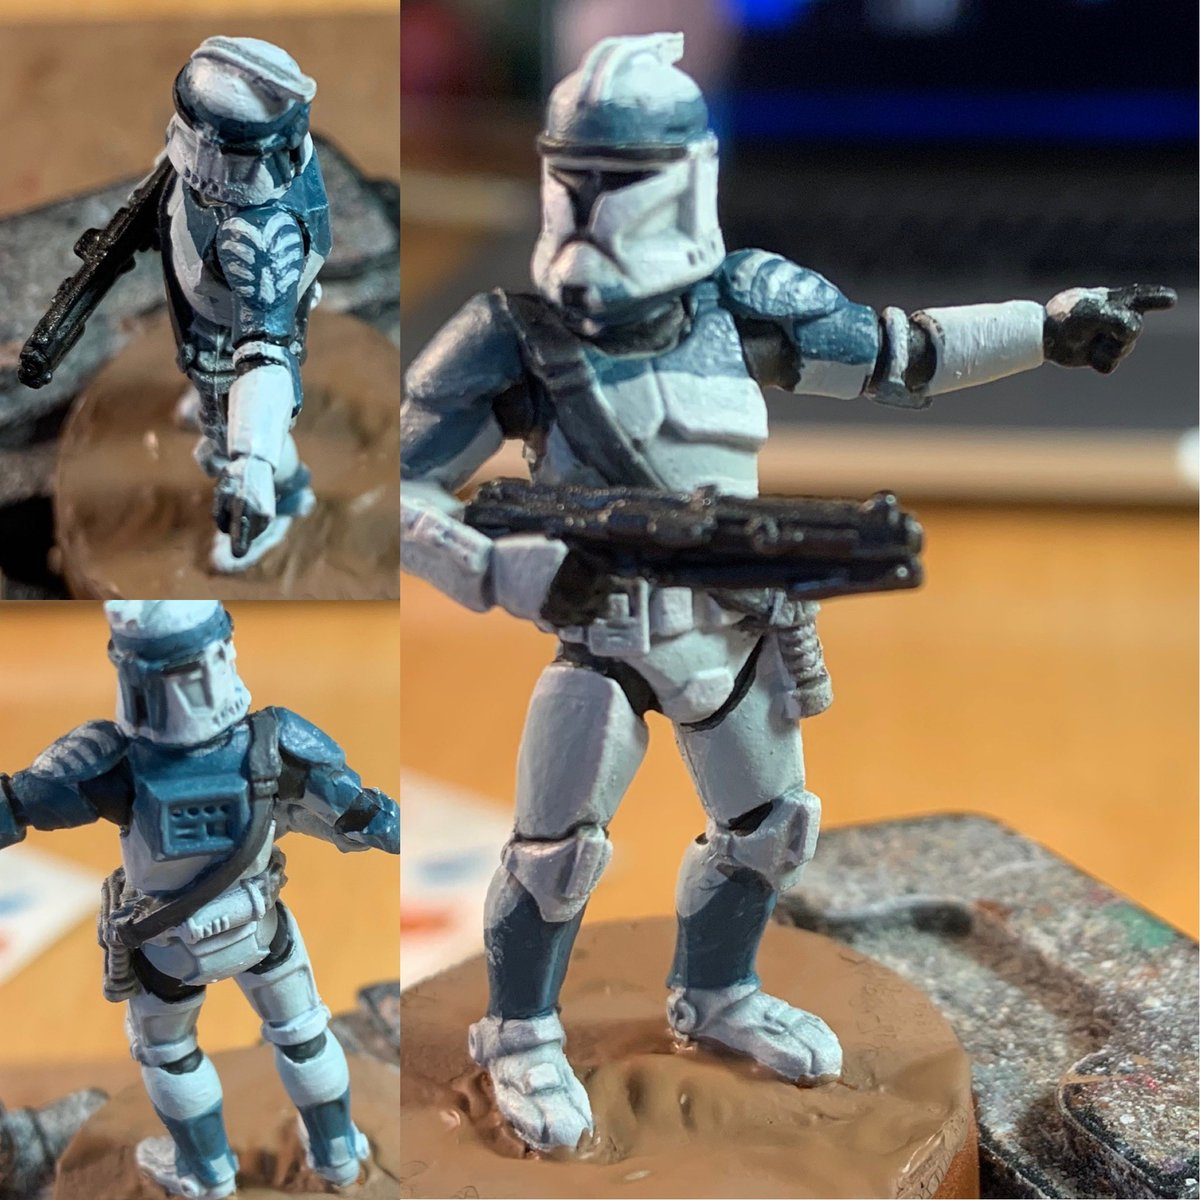 First attempt at a Phase 1 Clone Trooper for #StarWarsLegion. Going for the 104th Batallion, aka Wolf Pack. The shoulder pad is really tricky. Hopefully can get better at painting it. https://t.co/mtpFX4FZgl